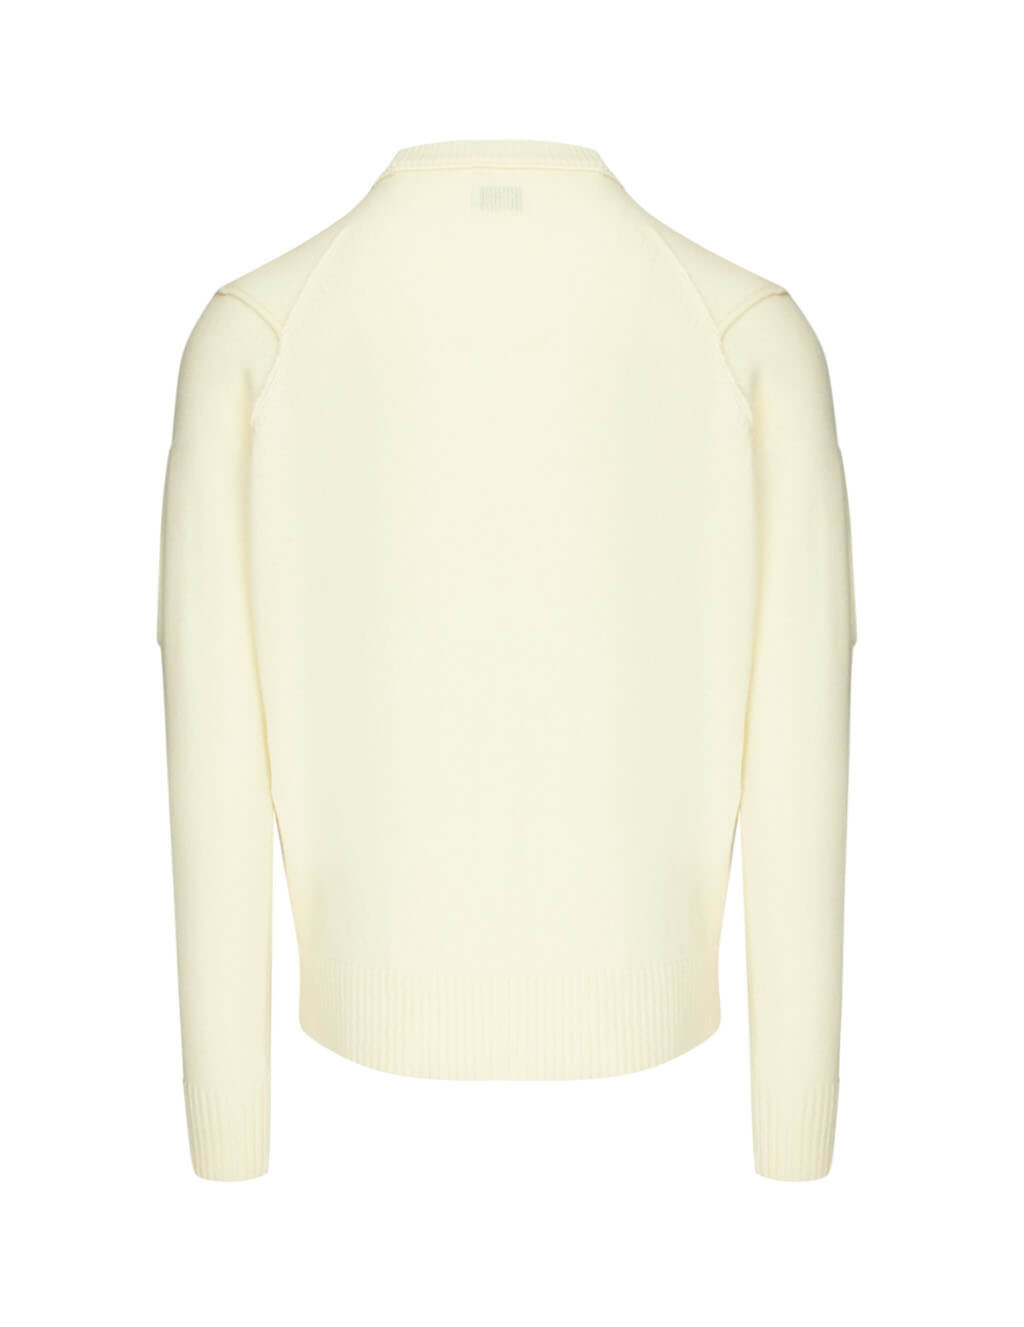 C.P. Company Men's Giulio Fashion White Lens Sleeve Knit 07CMKN064A005504A103